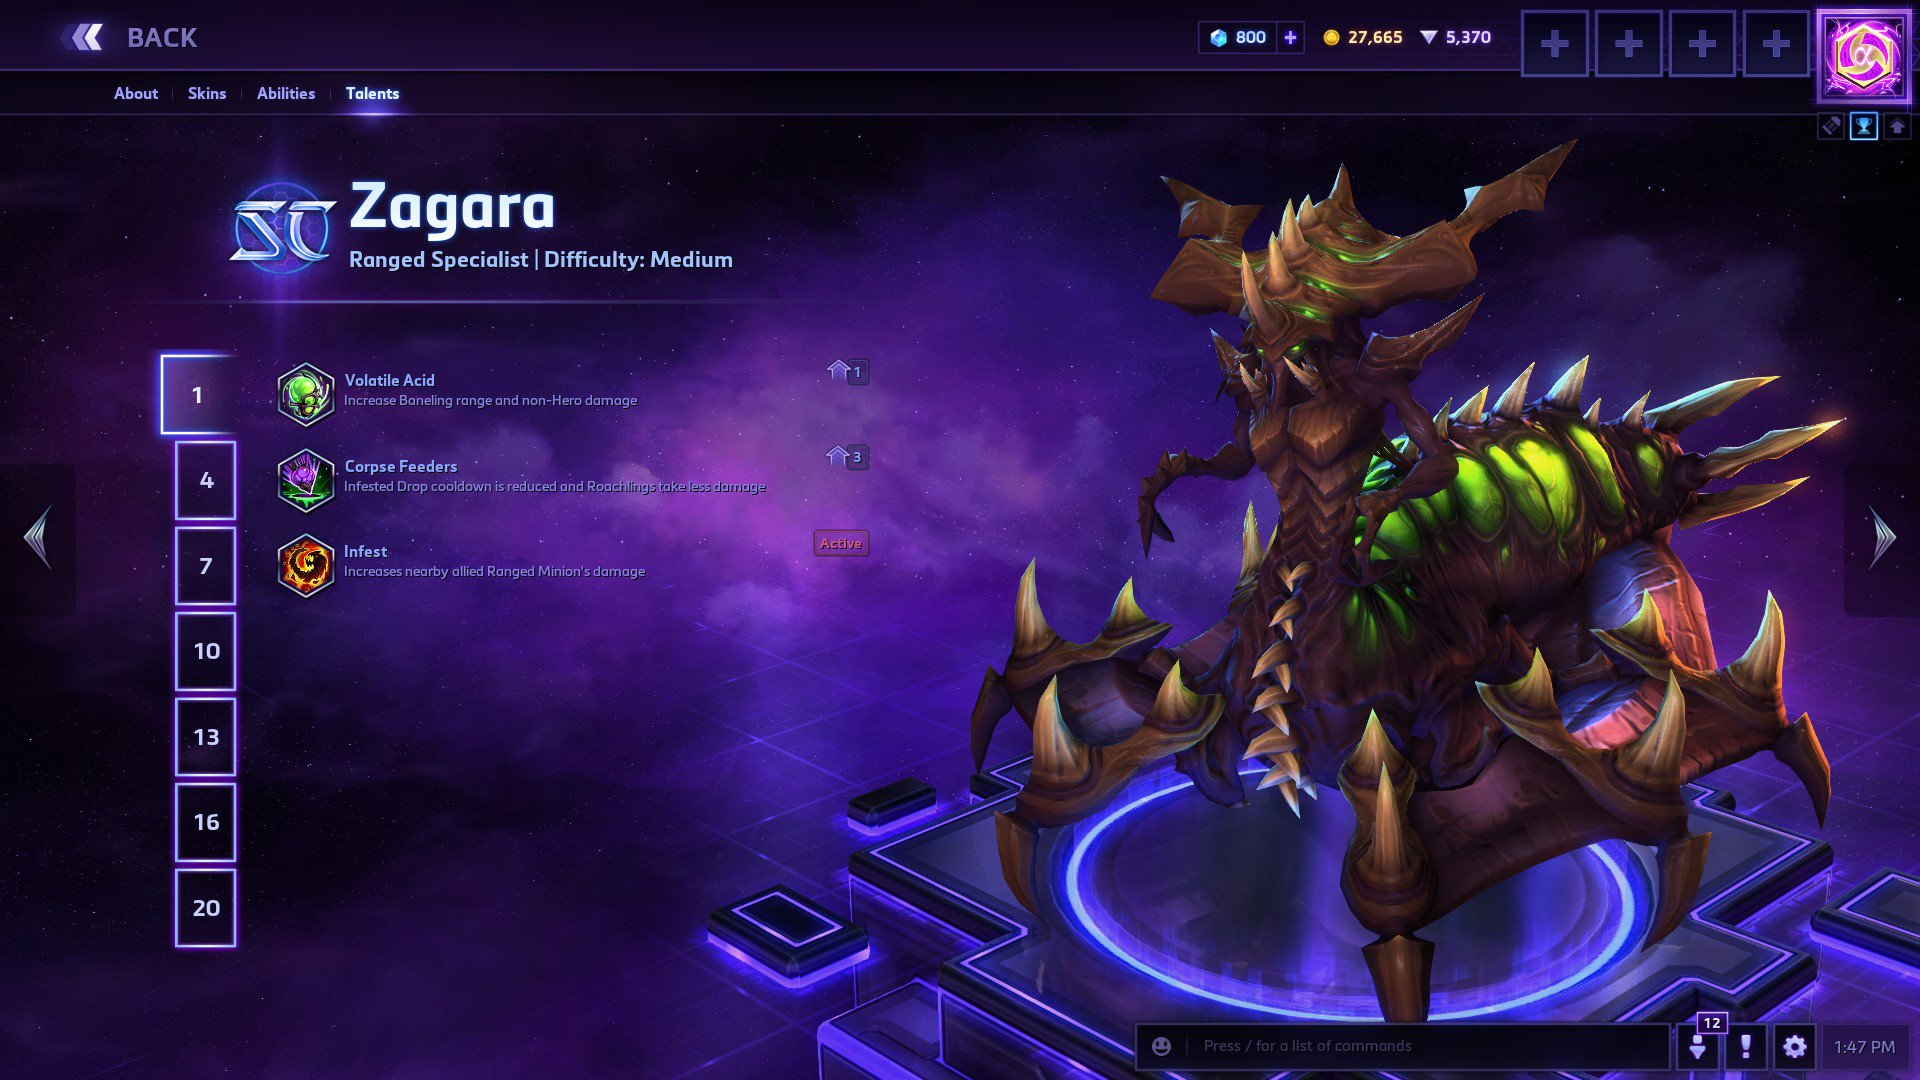 Blizzplanet On Twitter Updated Zagara Build Used In Hgc Na Eu Kr Winning Matches Blizzheroes Esports Https T Co Jlpbw2vjpn Zagara, broodmother of the swarm, is one the heroes that are consistently played in a professional build pros and cons. twitter